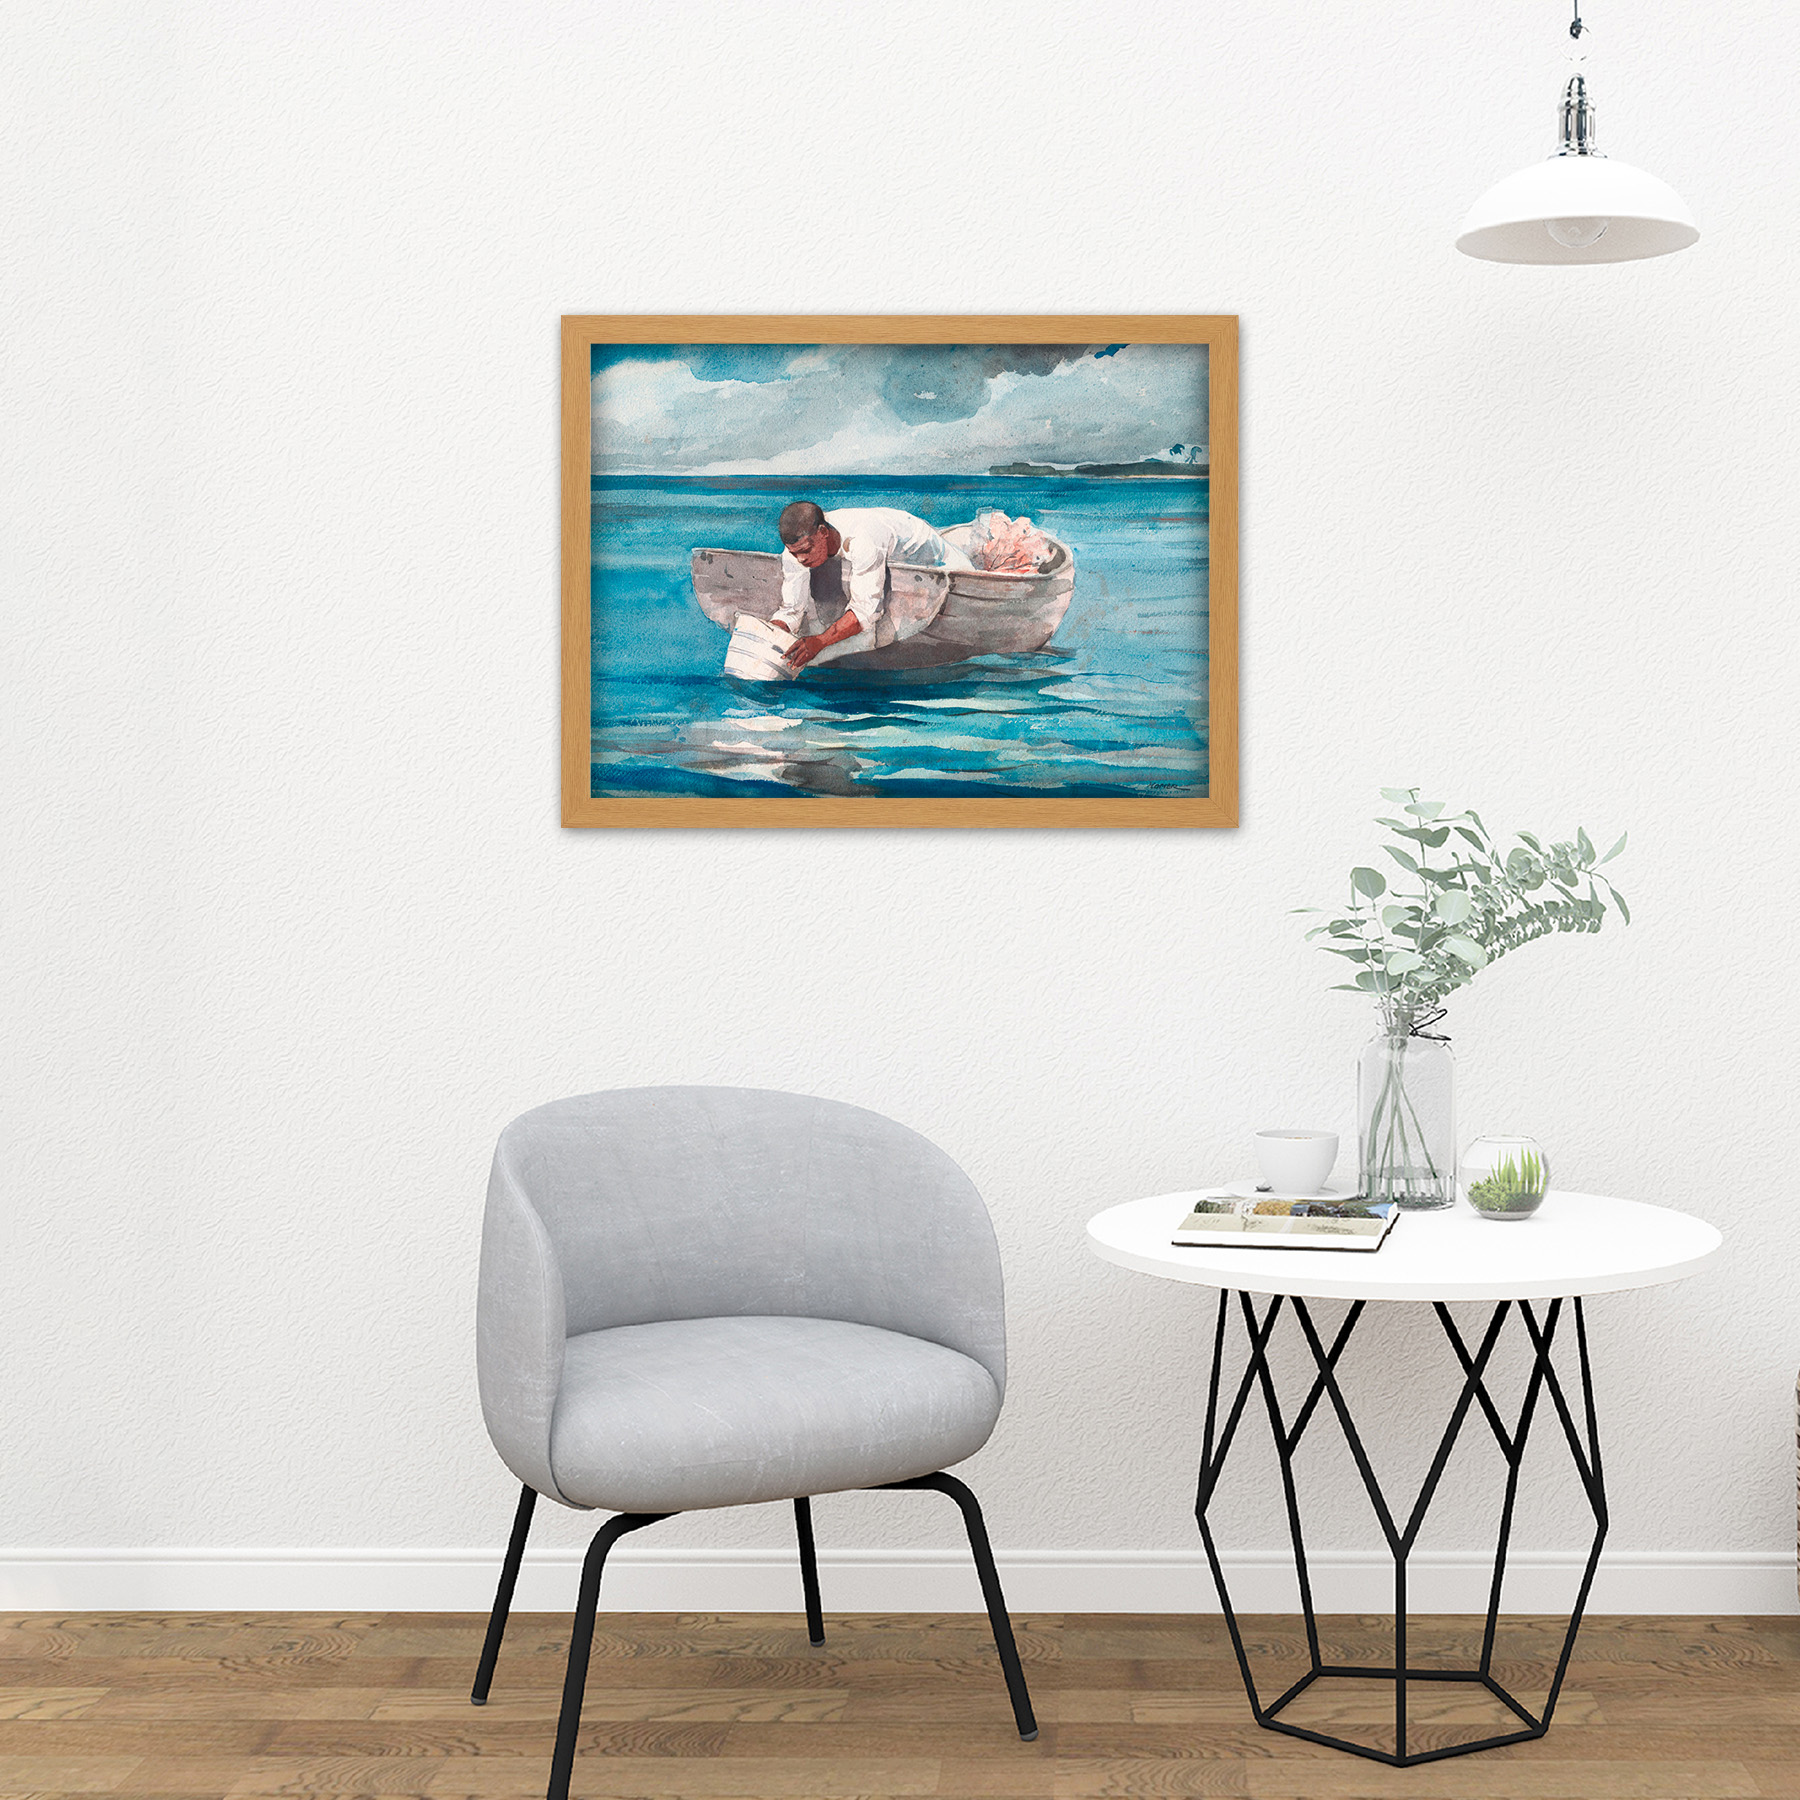 Homer-The-Water-Fan-Boat-Sea-Blue-Painting-Large-Framed-Art-Print thumbnail 18